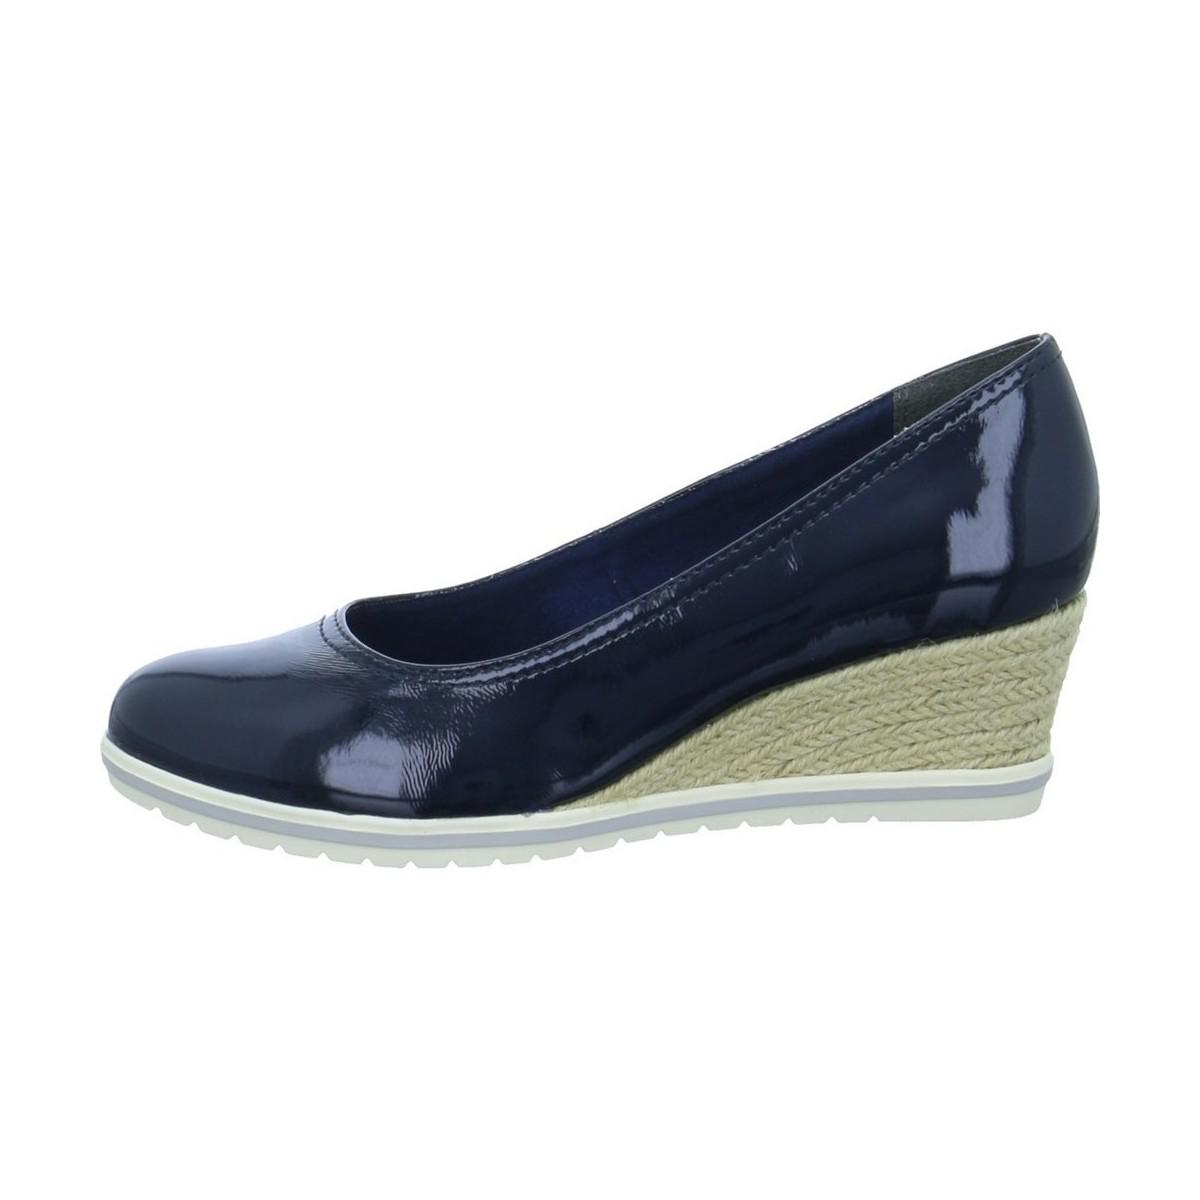 Lowest Price Cheap Real Eastbay Tamaris Rosario Keil women's Court Shoes in Shop Cheap Price Cheap Fake Fz8VBP